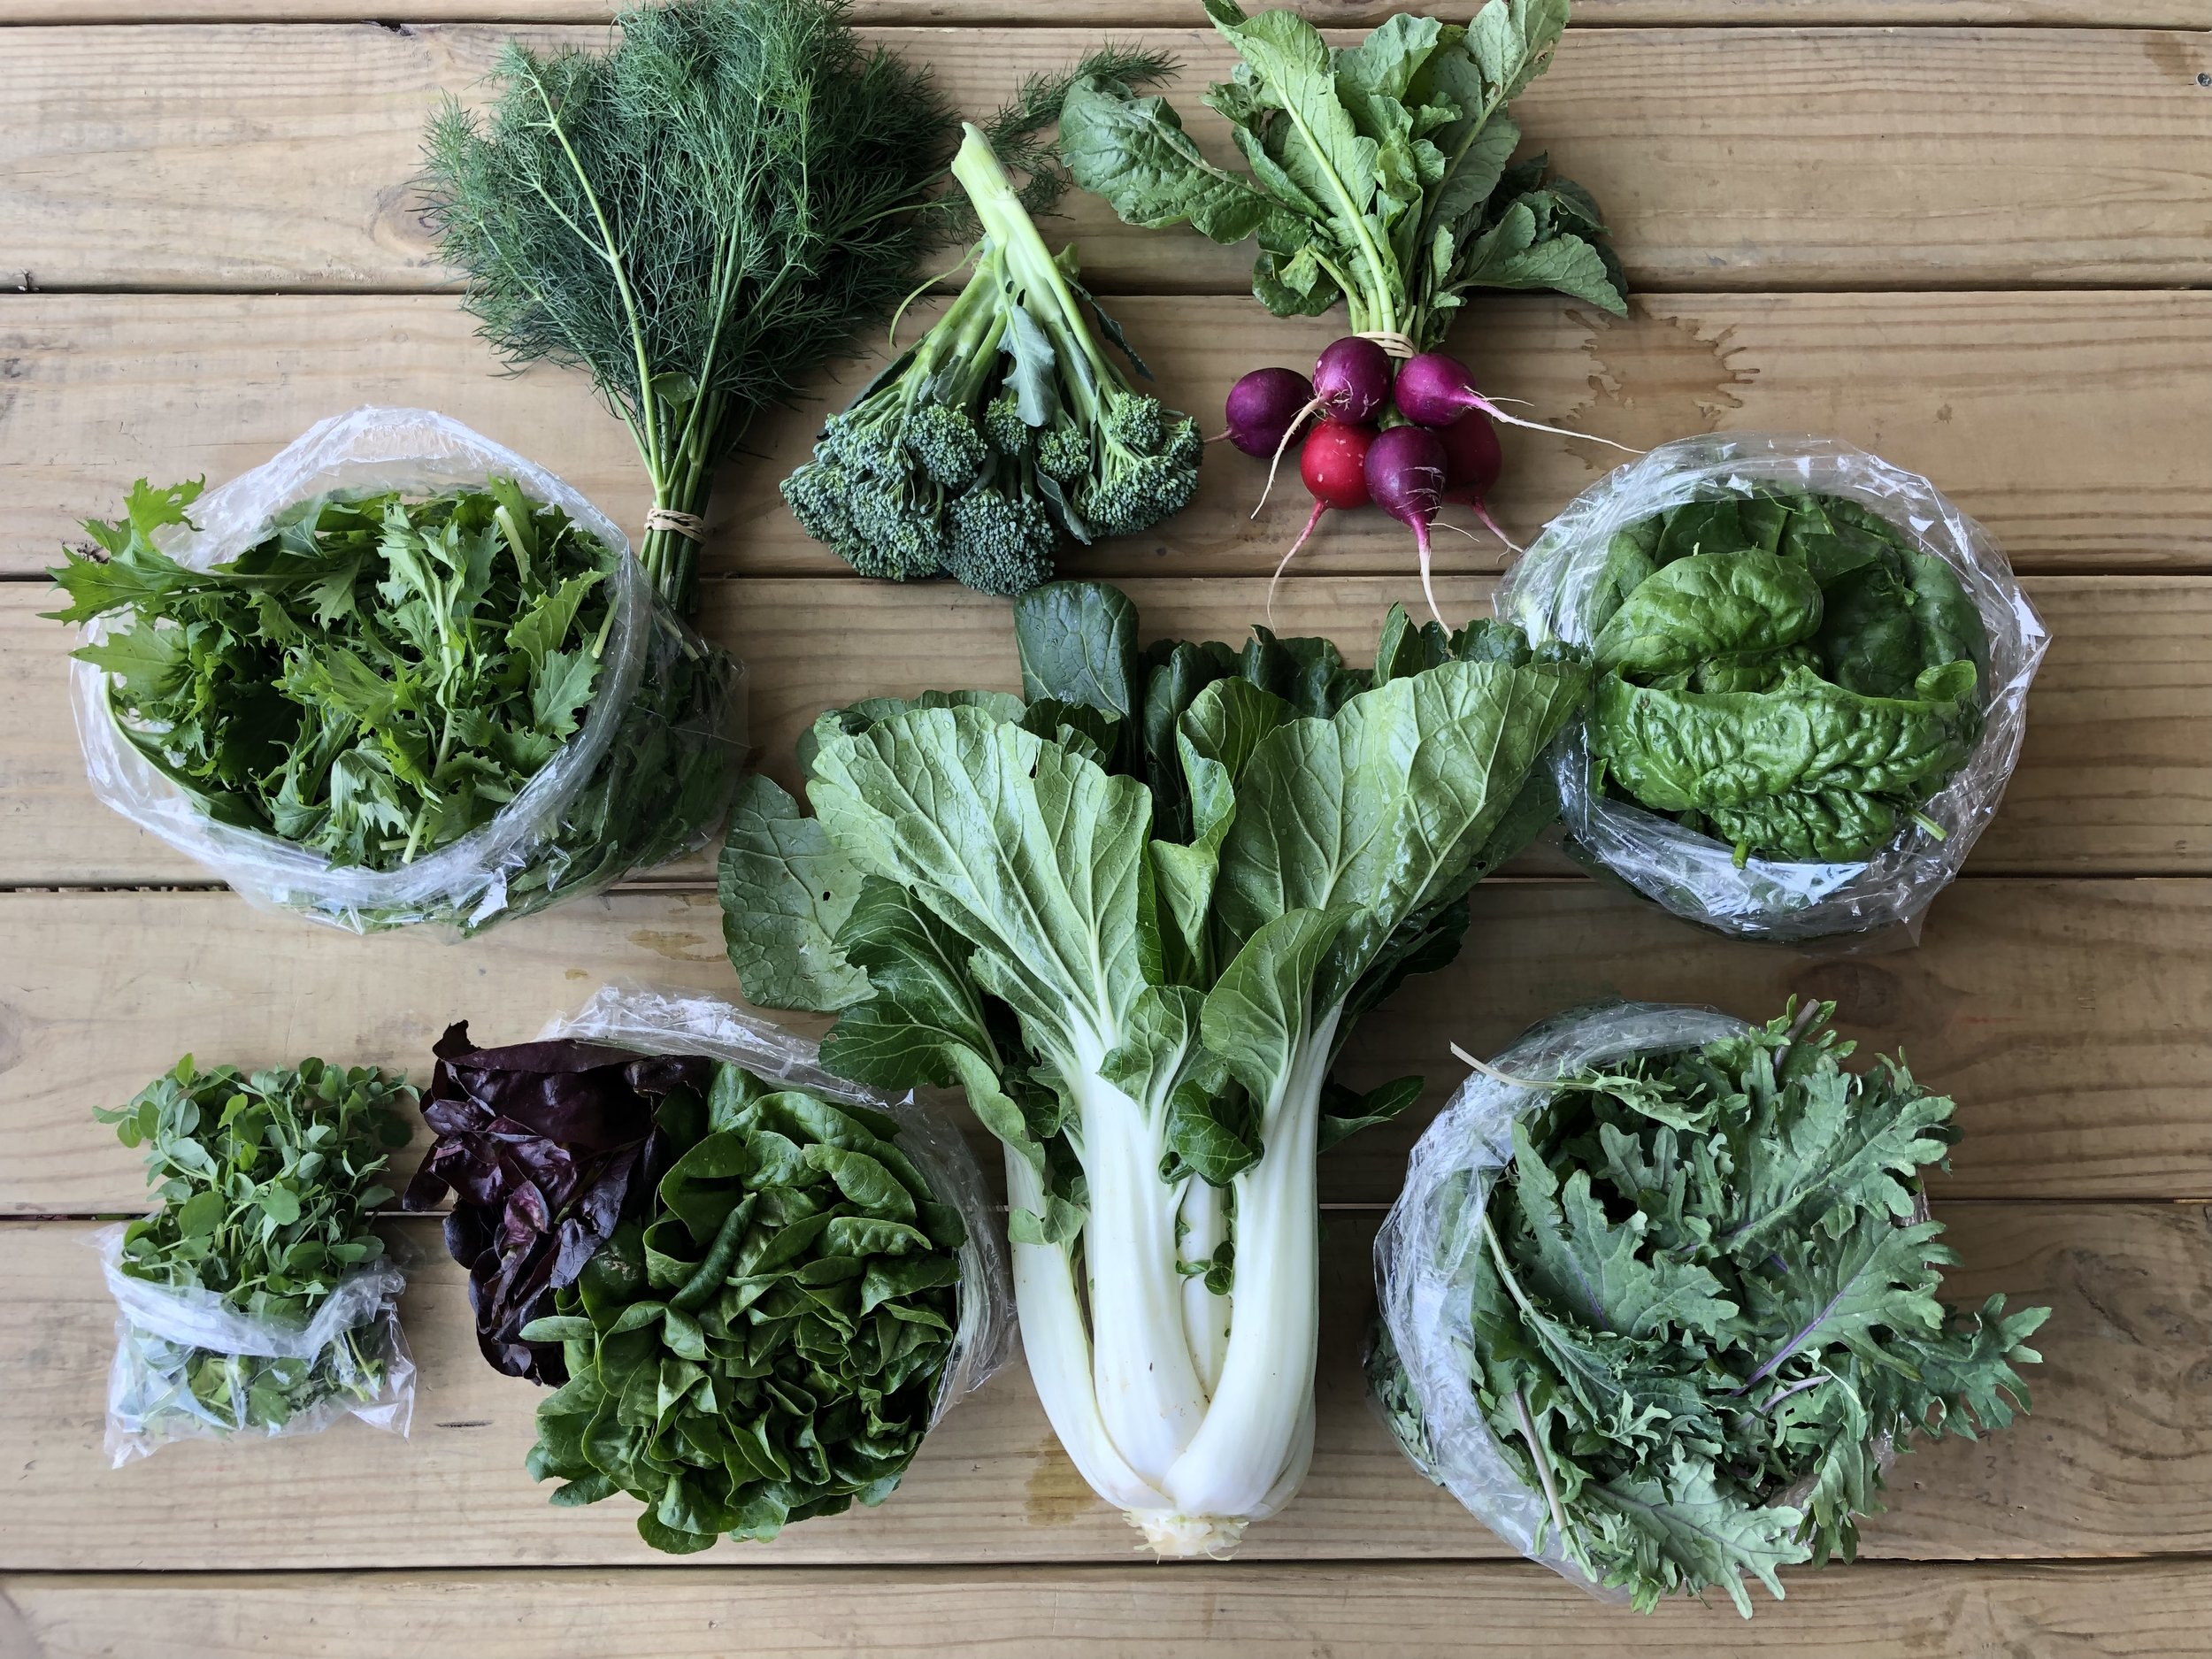 Top Row: Dill, Broccolini, and Radishes  Middle Row: Mizuno Mix, and Spinach  Bottom Row: Pea Shoots, Lettuce, Bok Choy, and Baby Kale